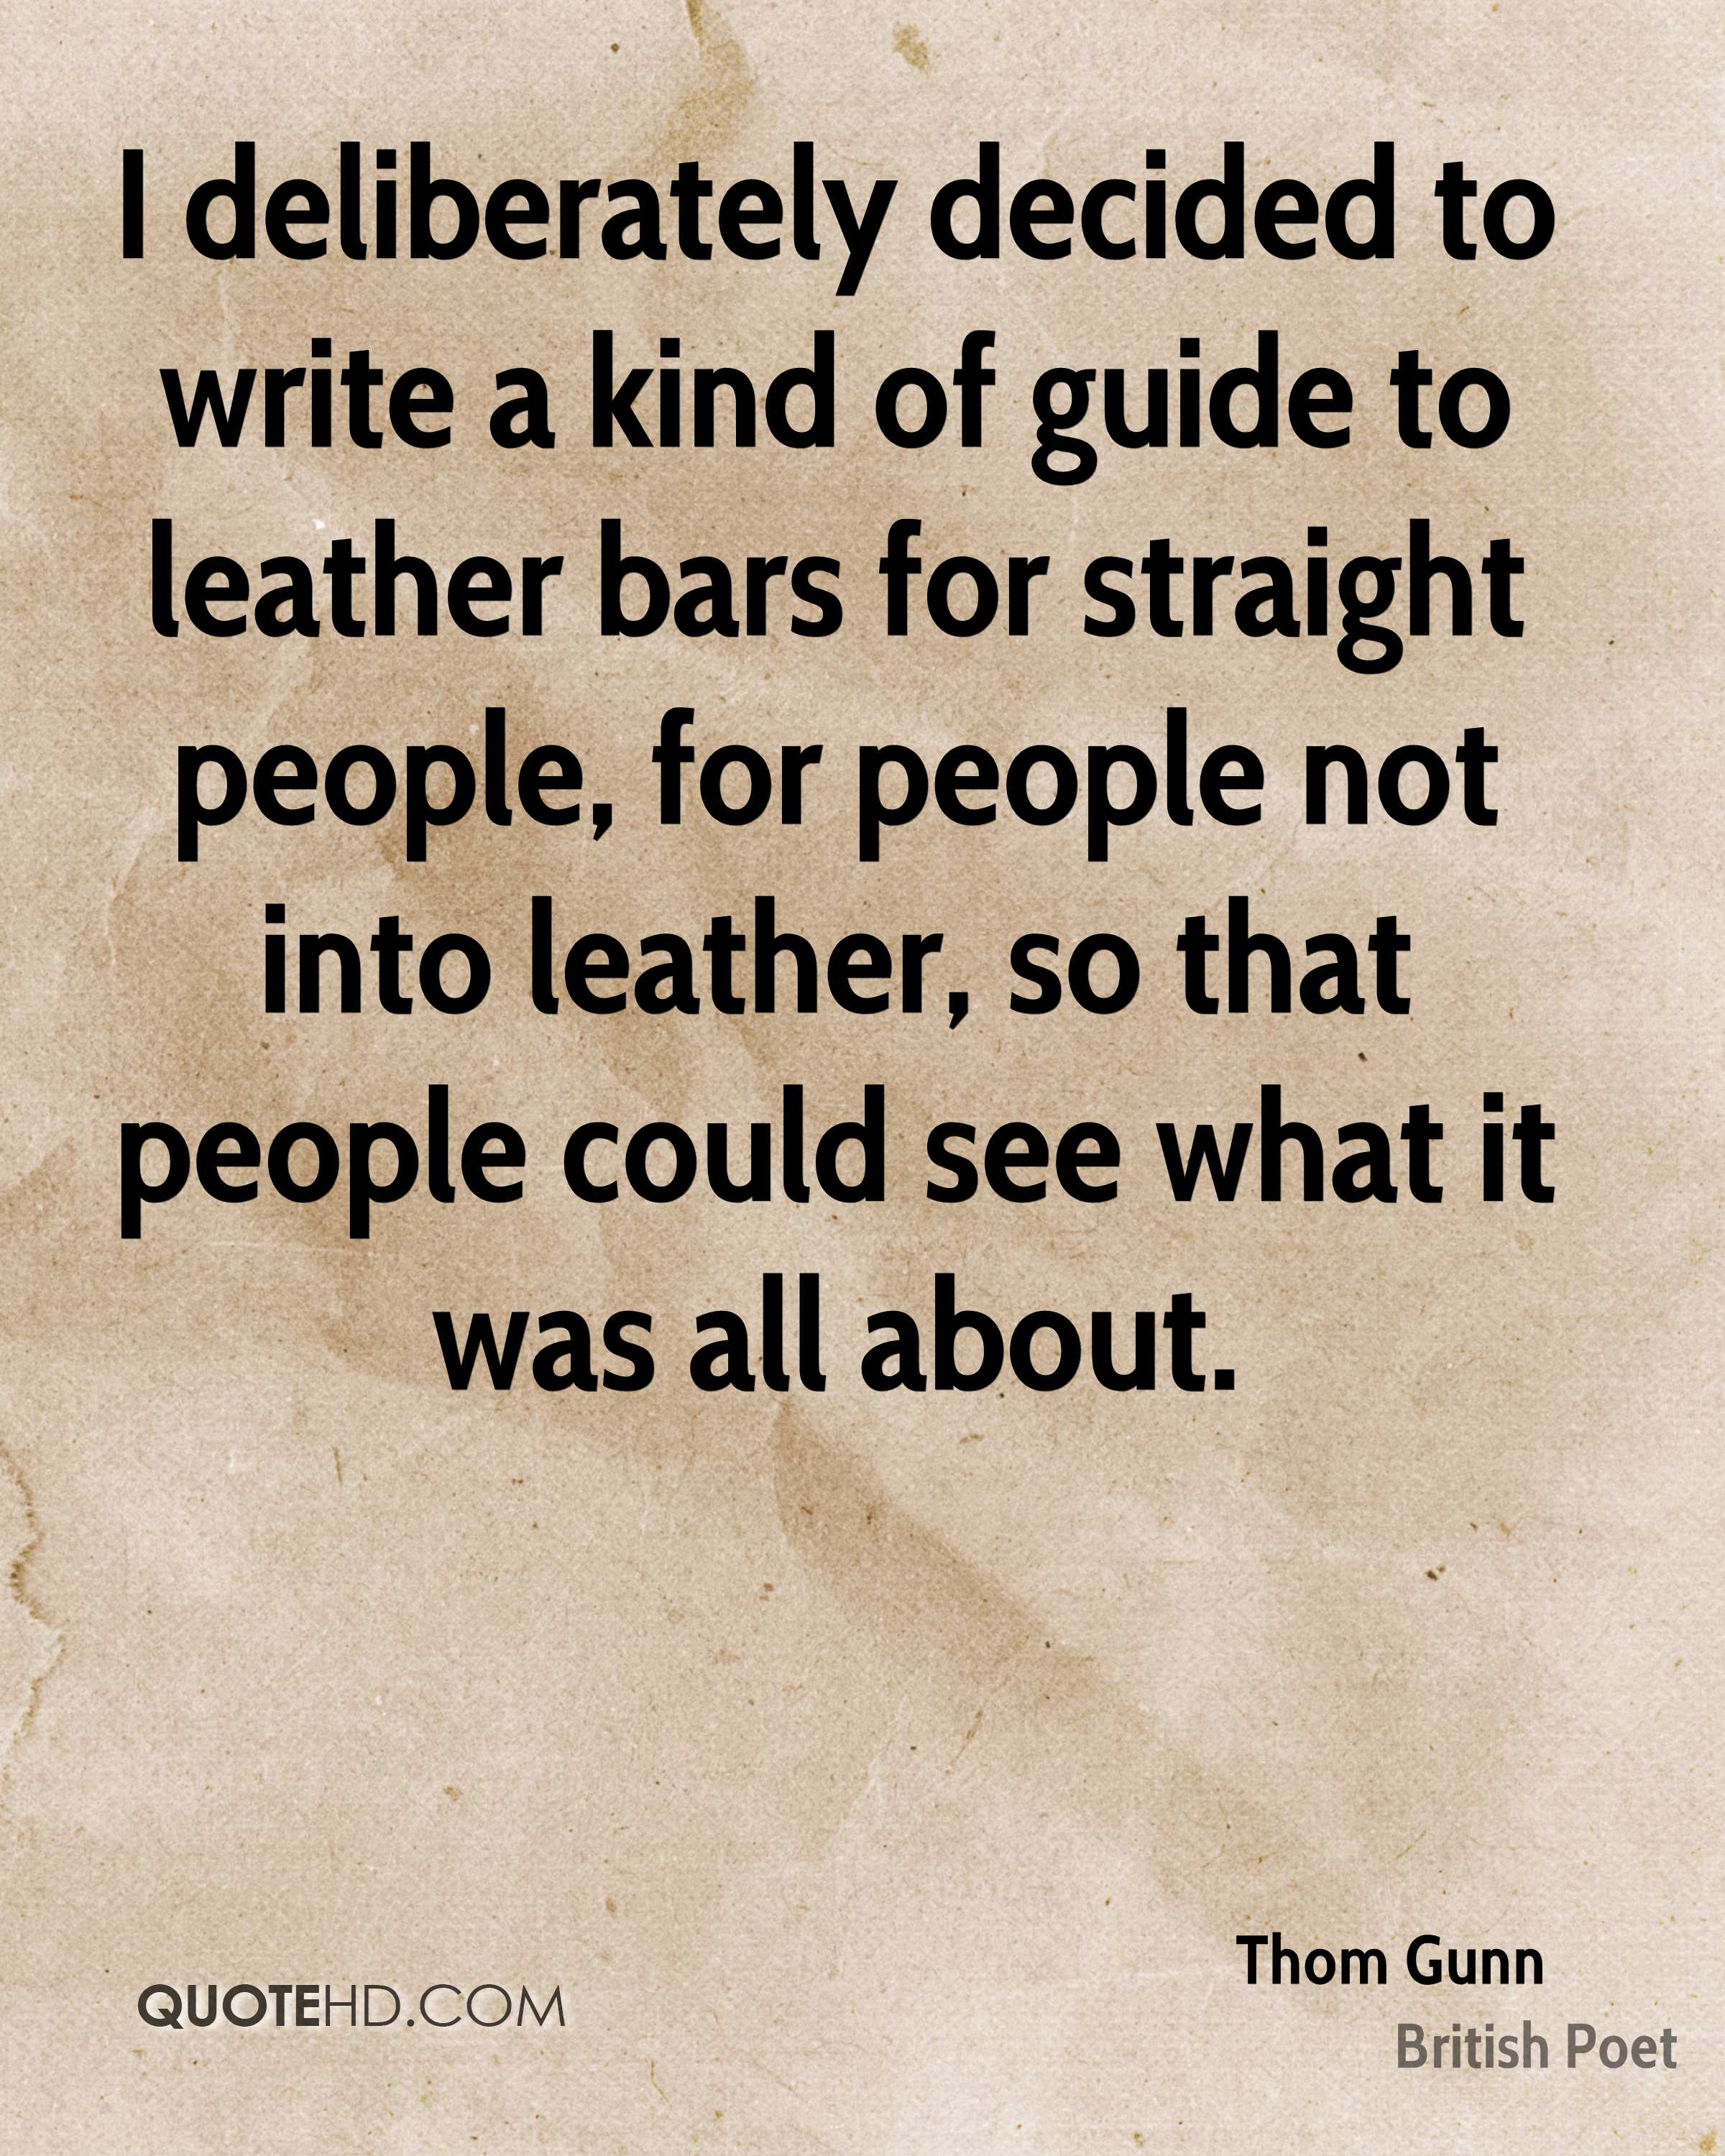 I deliberately decided to write a kind of guide to leather bars for straight people, for people not into leather, so that people could see what it was all about.